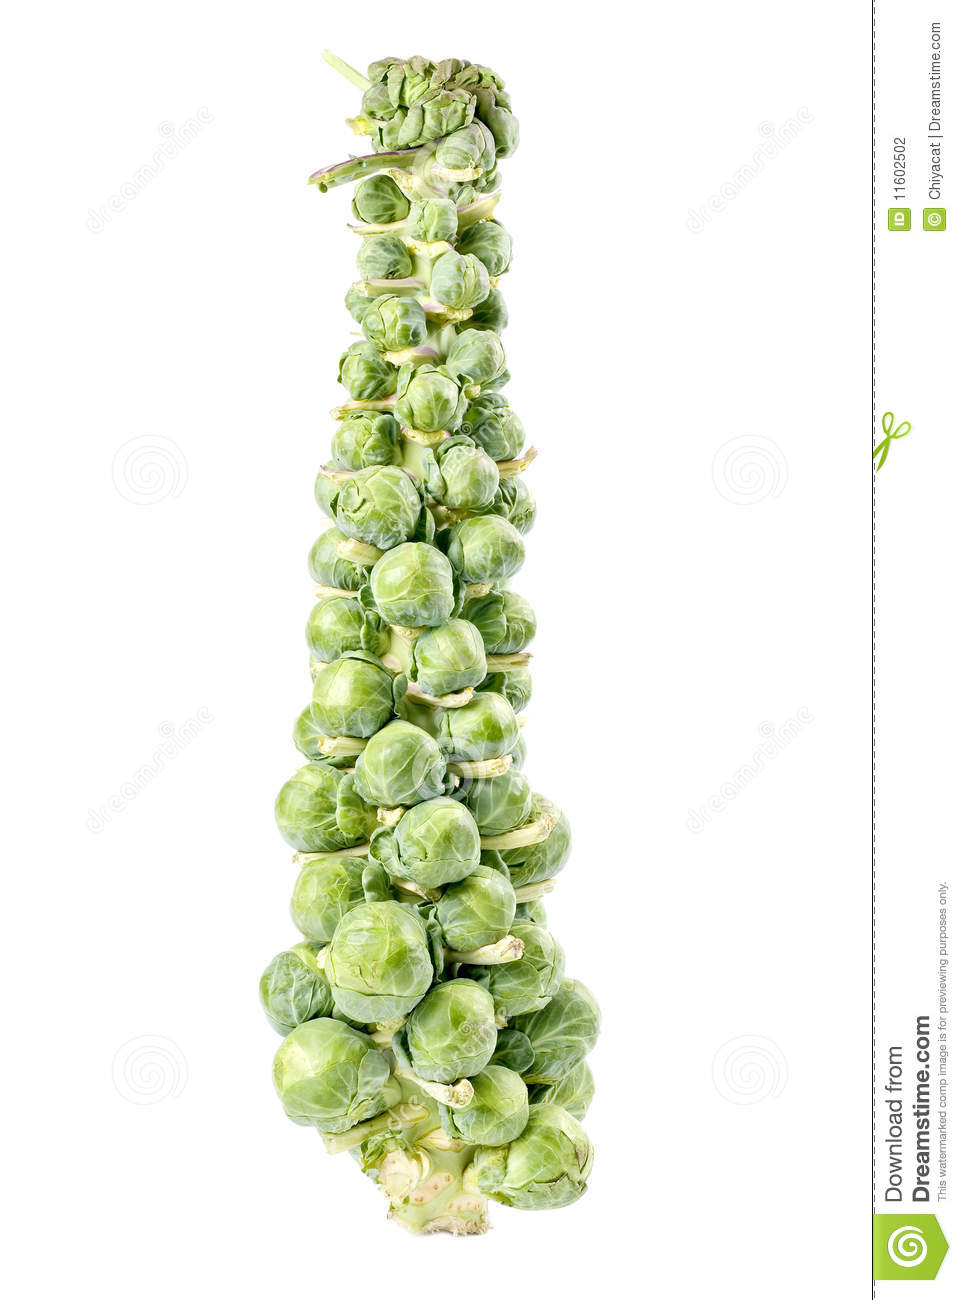 Stalk Of Brussels Sprouts Stock Photography Image 11602502 Watermelon Wallpaper Rainbow Find Free HD for Desktop [freshlhys.tk]